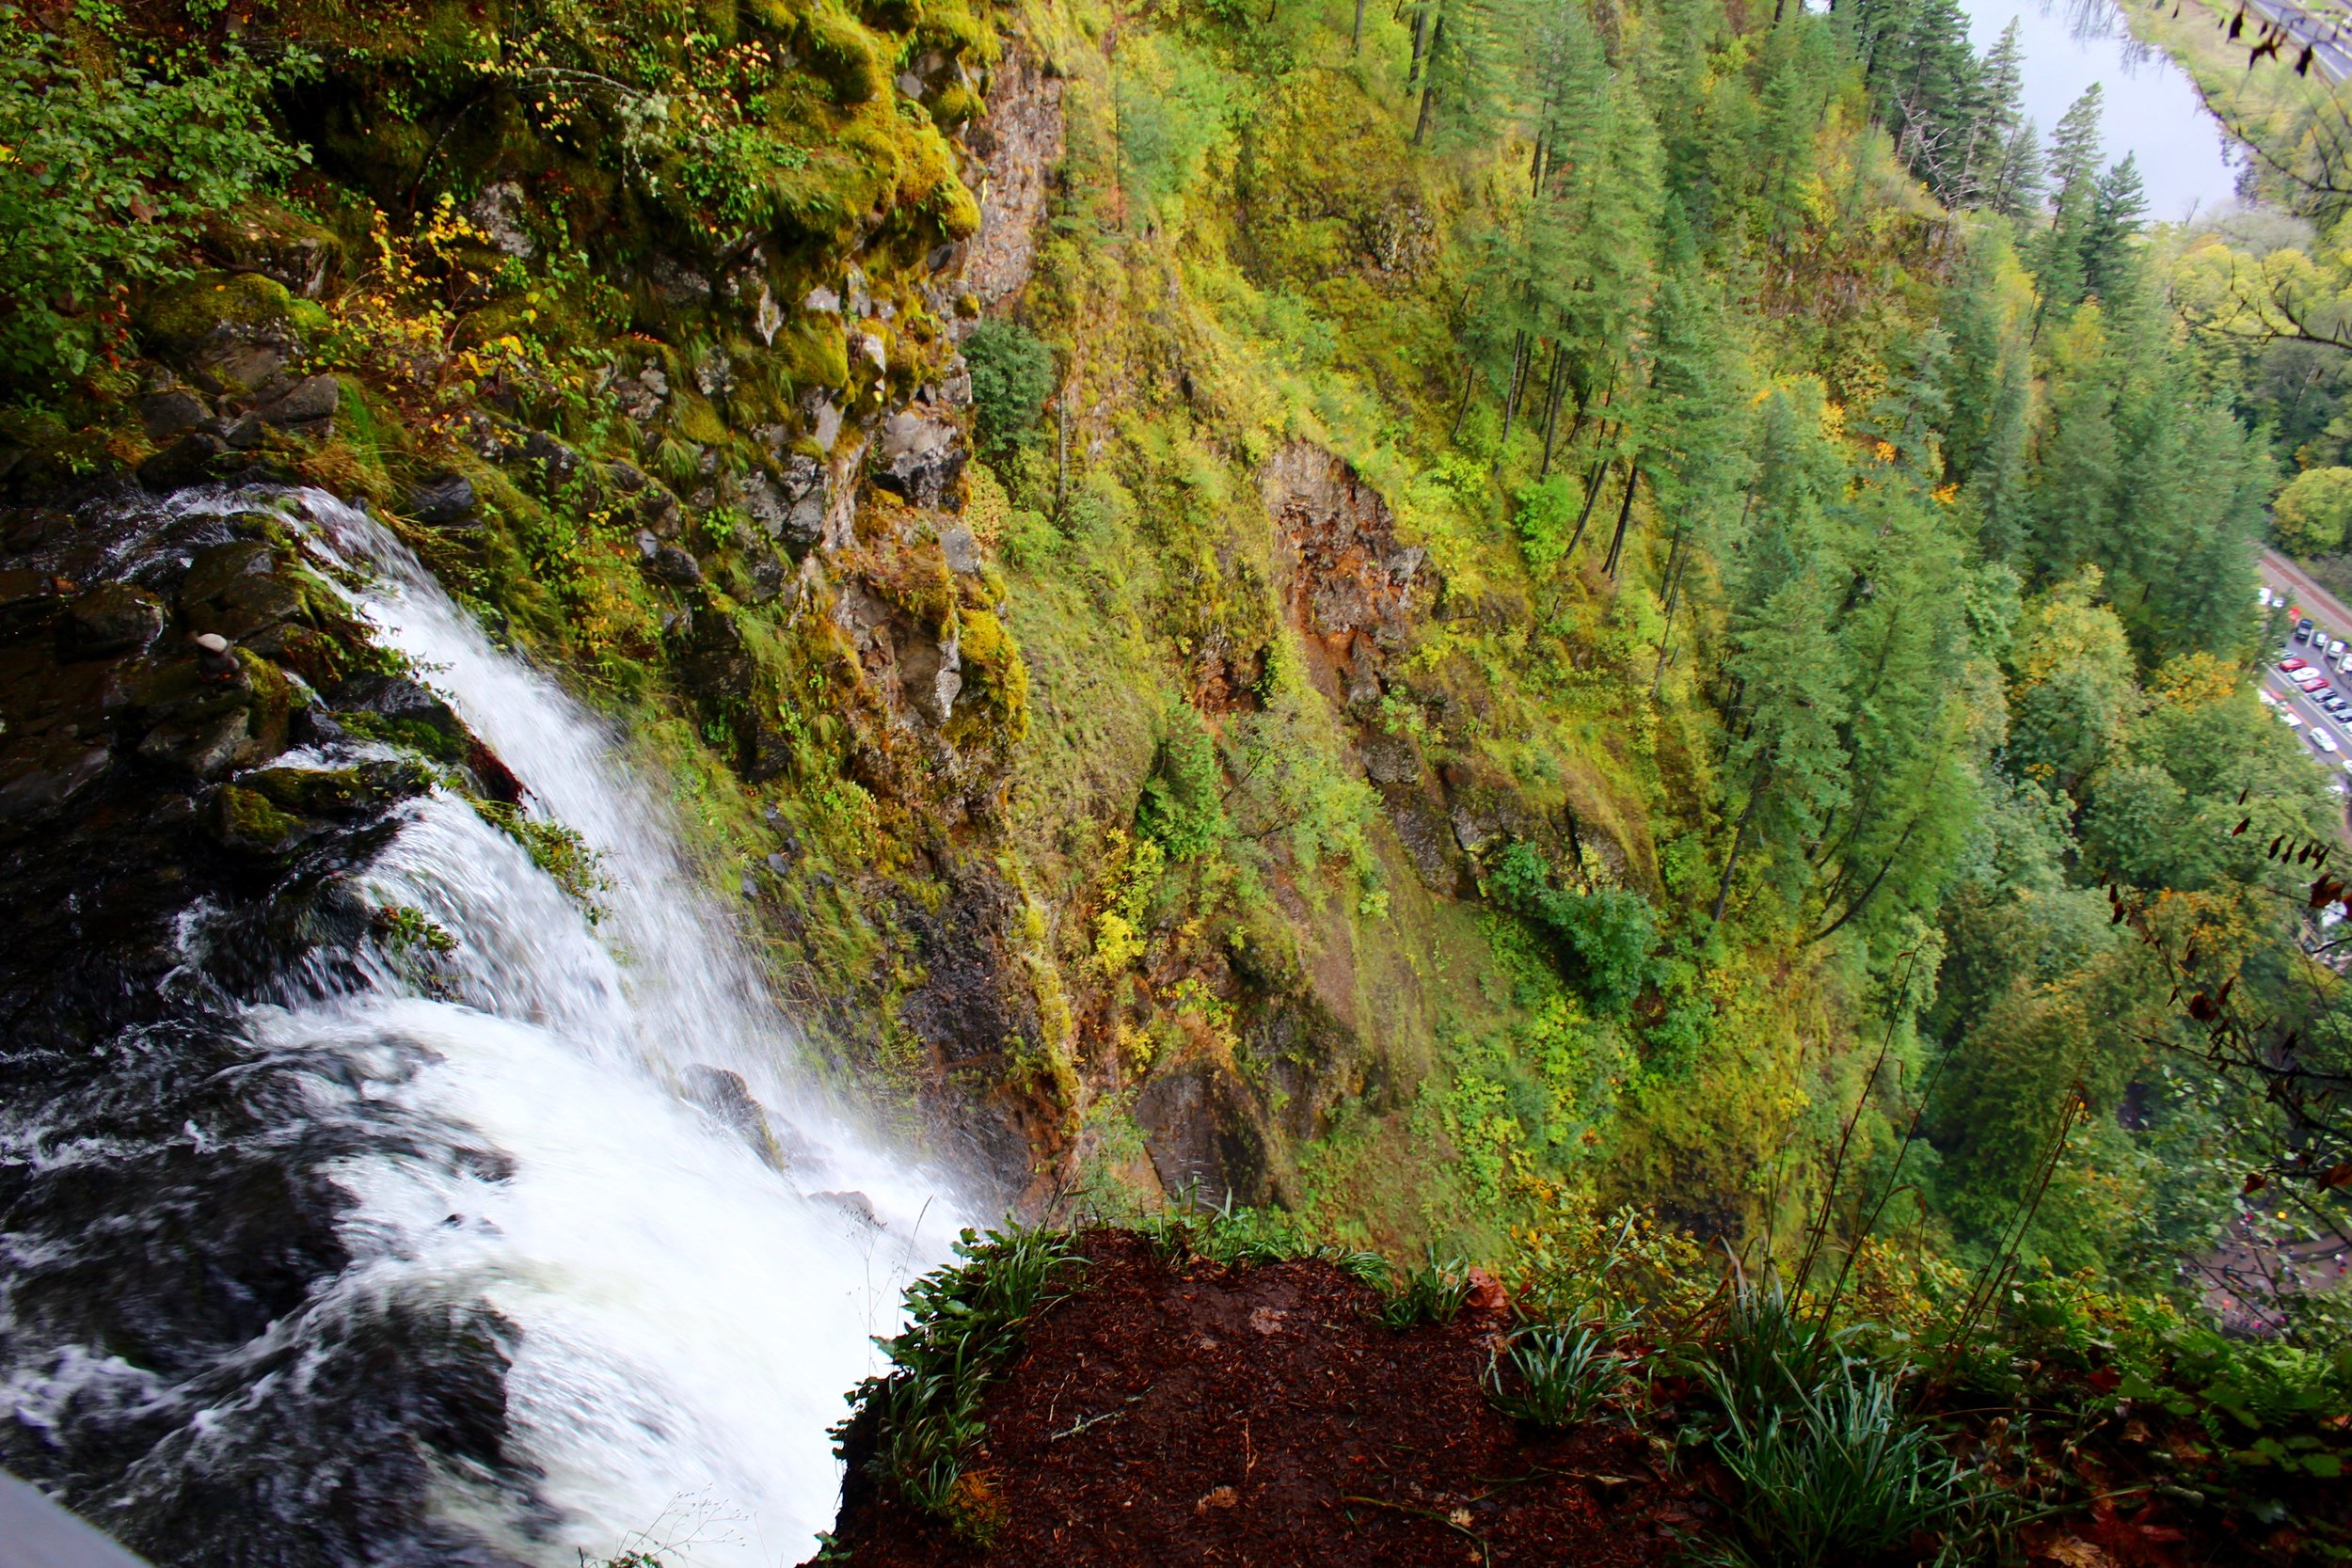 The view of the Columbia from the lookout point over one of the two Falls at Multnomah.